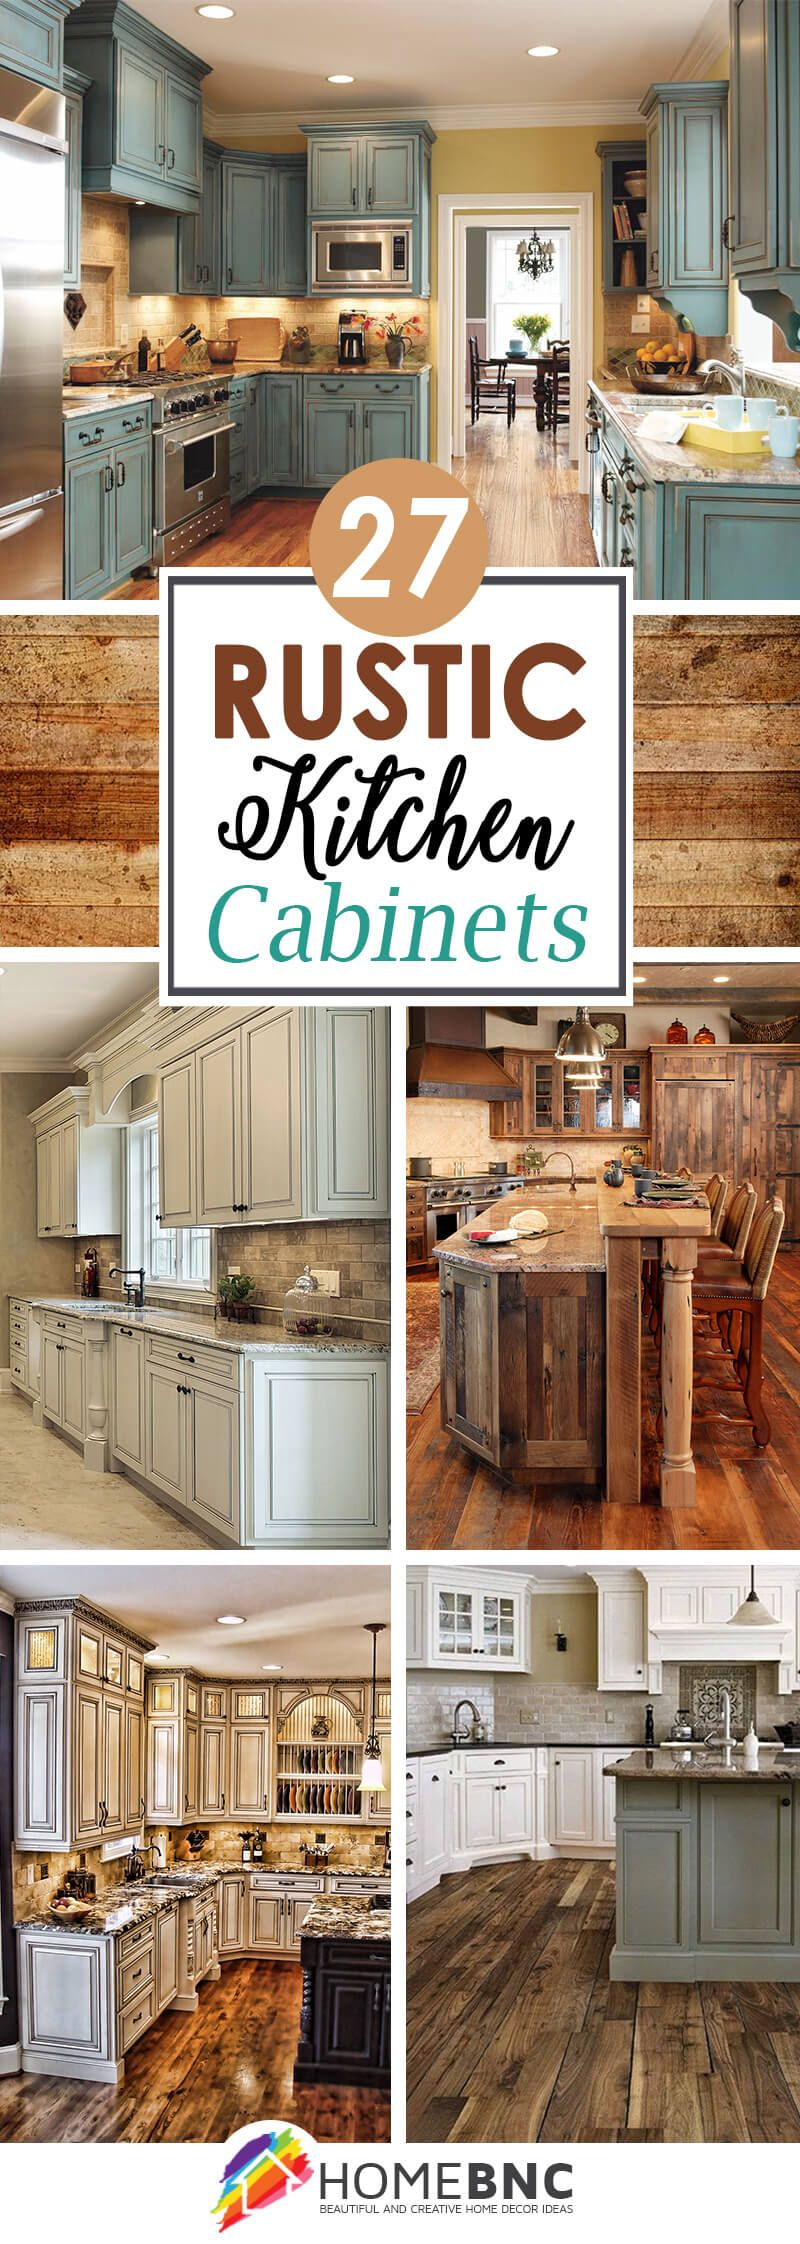 Rustic Kitchen Cabinet Ideas 27 Cabinets for